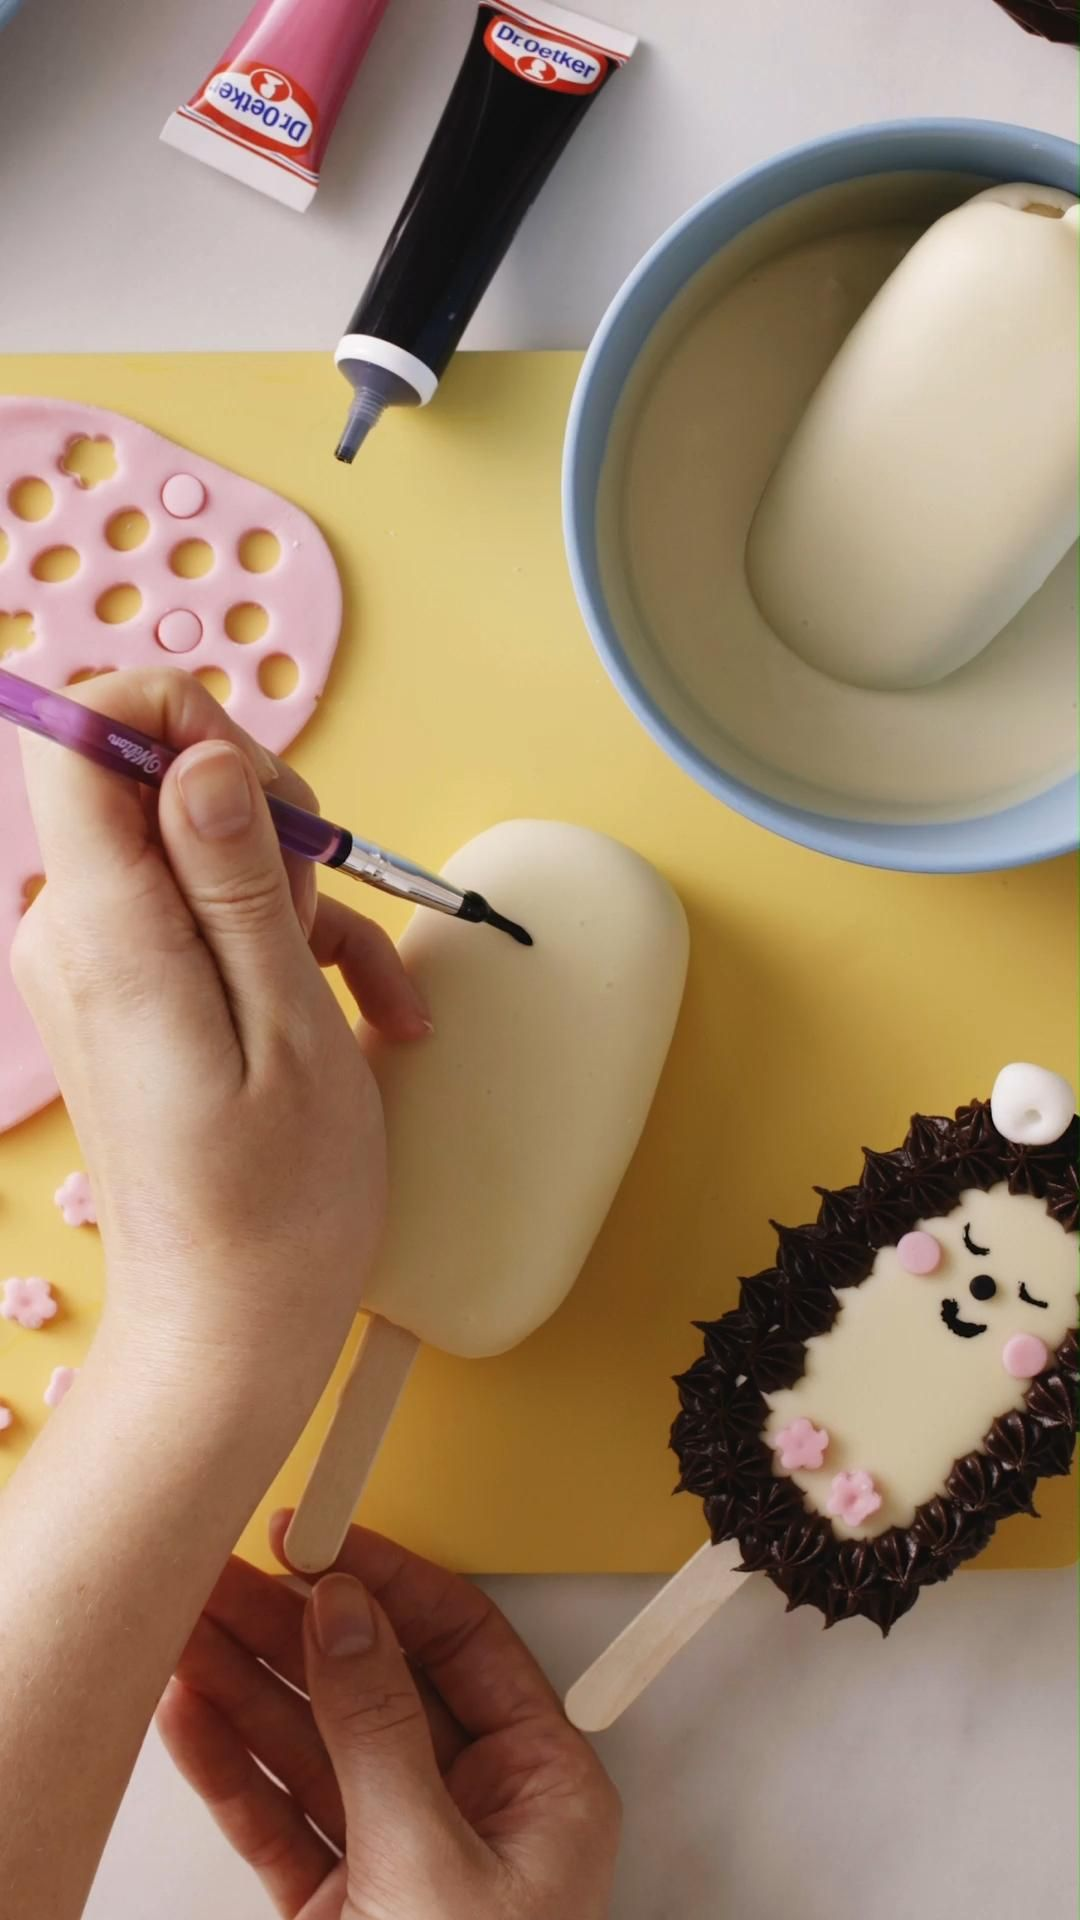 Kawaii Woodland Creature Cakesicles Video Recipe Video In 2020 Yummy Food Dessert Cooking And Baking Food